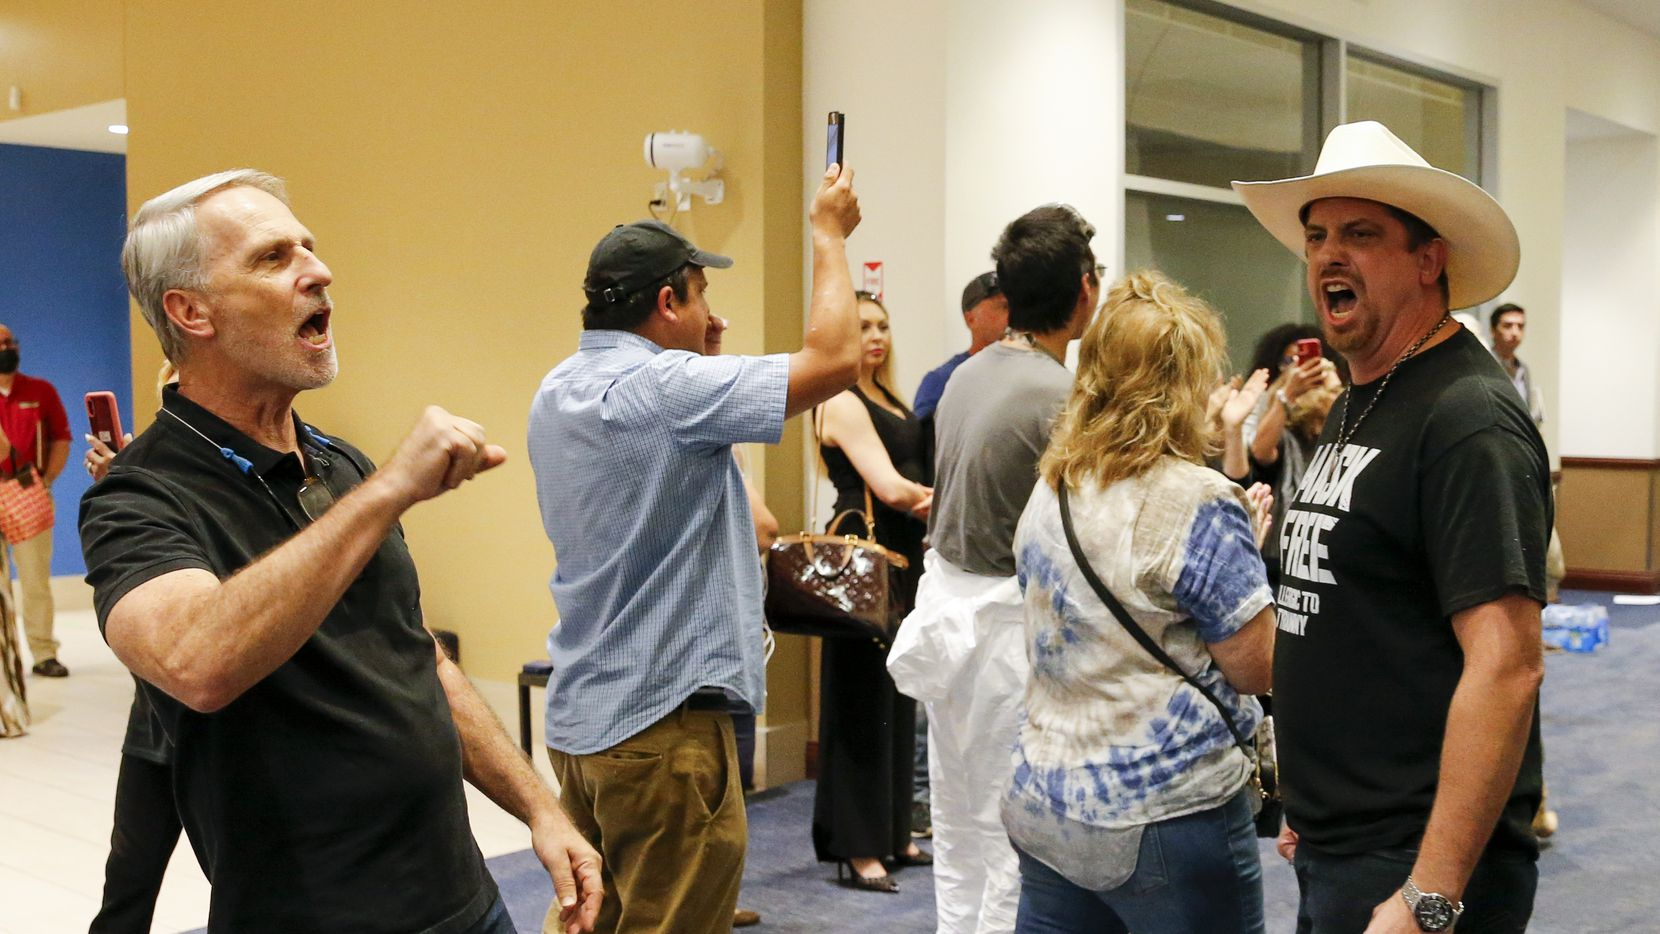 Opponents of mask mandates chant to be let in during a Dallas ISD school board meeting closed session on Thursday, Aug. 26, 2021, in Dallas. (Elias Valverde II/The Dallas Morning News)